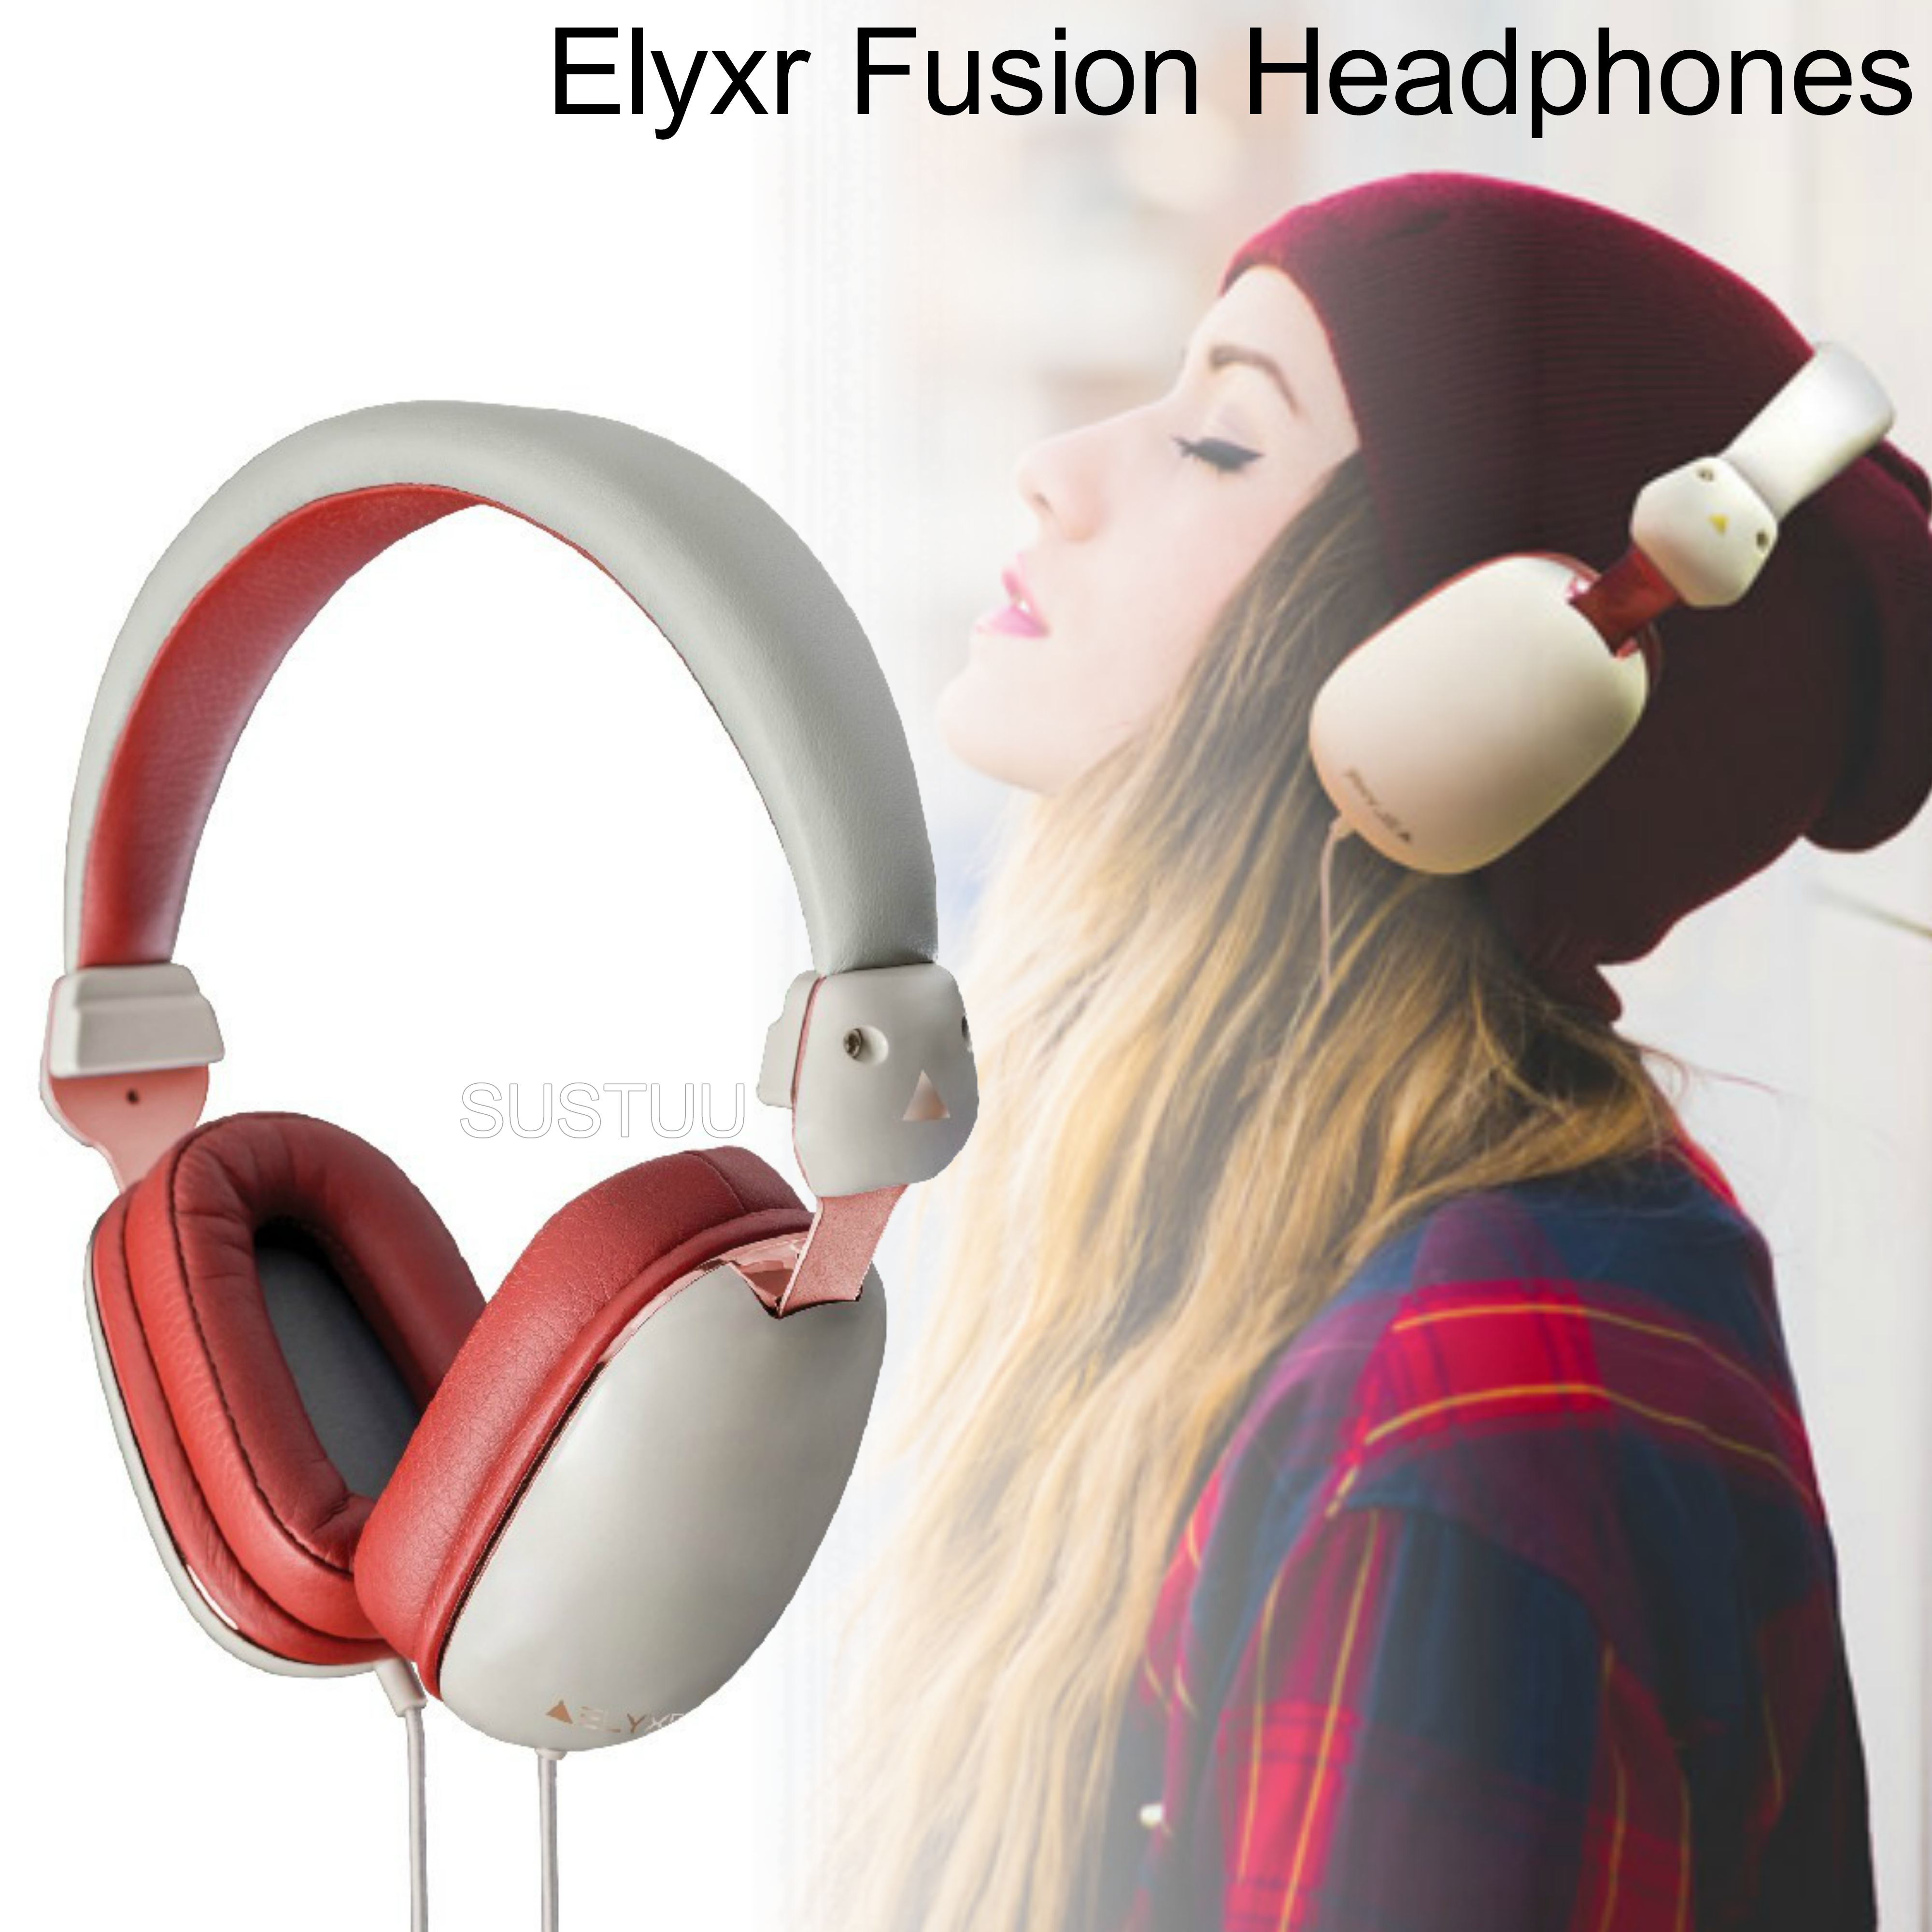 Elyxr Audio ELX-1004 Fusion On-Ear Wired Headphones|Dynamic Audio|Grey and Burgandy